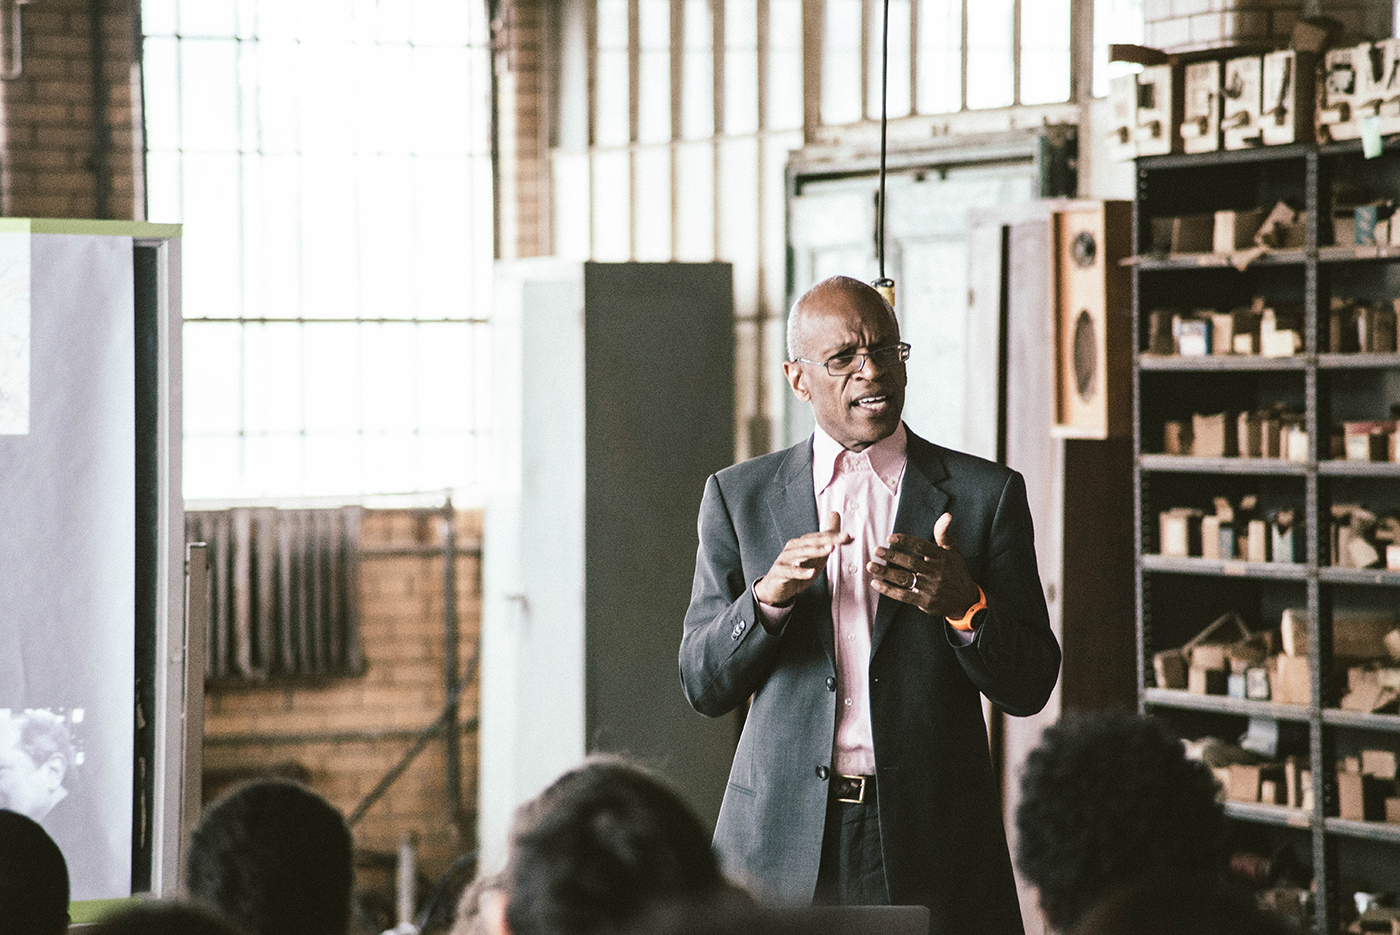 Maurice Cox, Detroit's urban planner, presents new developments to ICD fellows at Herman Kiefer (photo by Justin Millhouse)